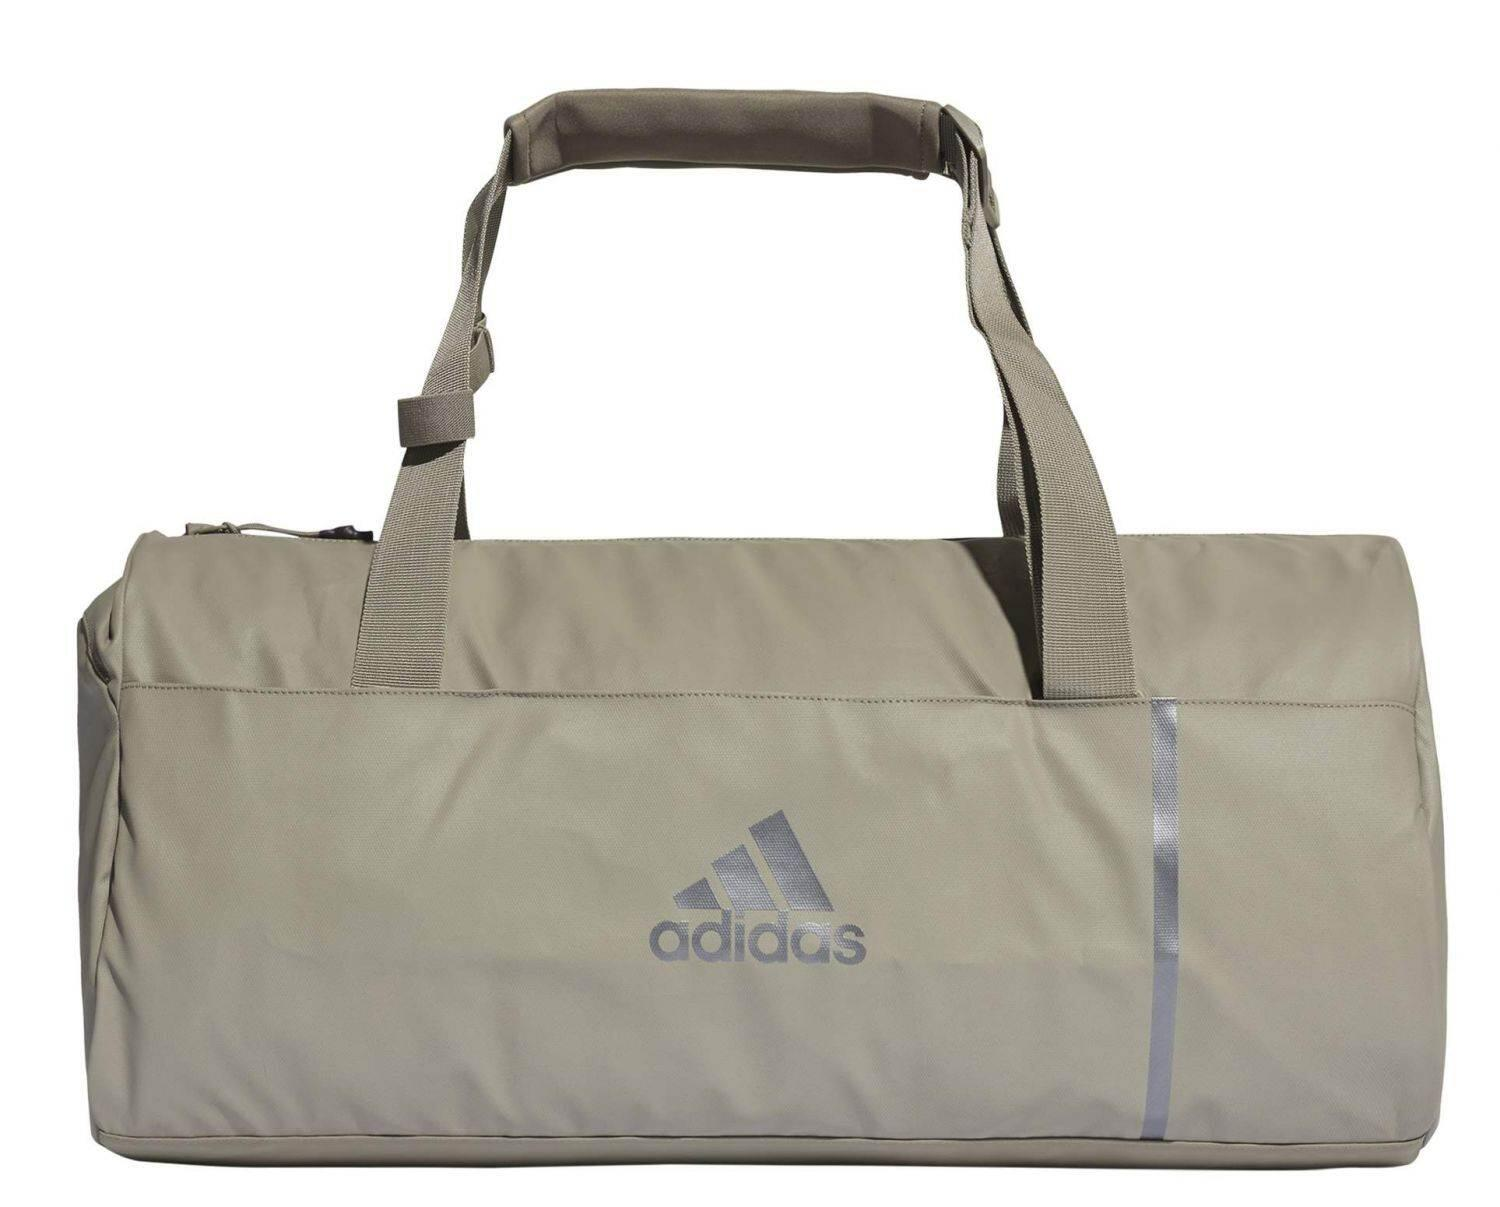 adidas-teambag-m-tasche-farbe-trace-cargo-night-metallic-night-metallic-